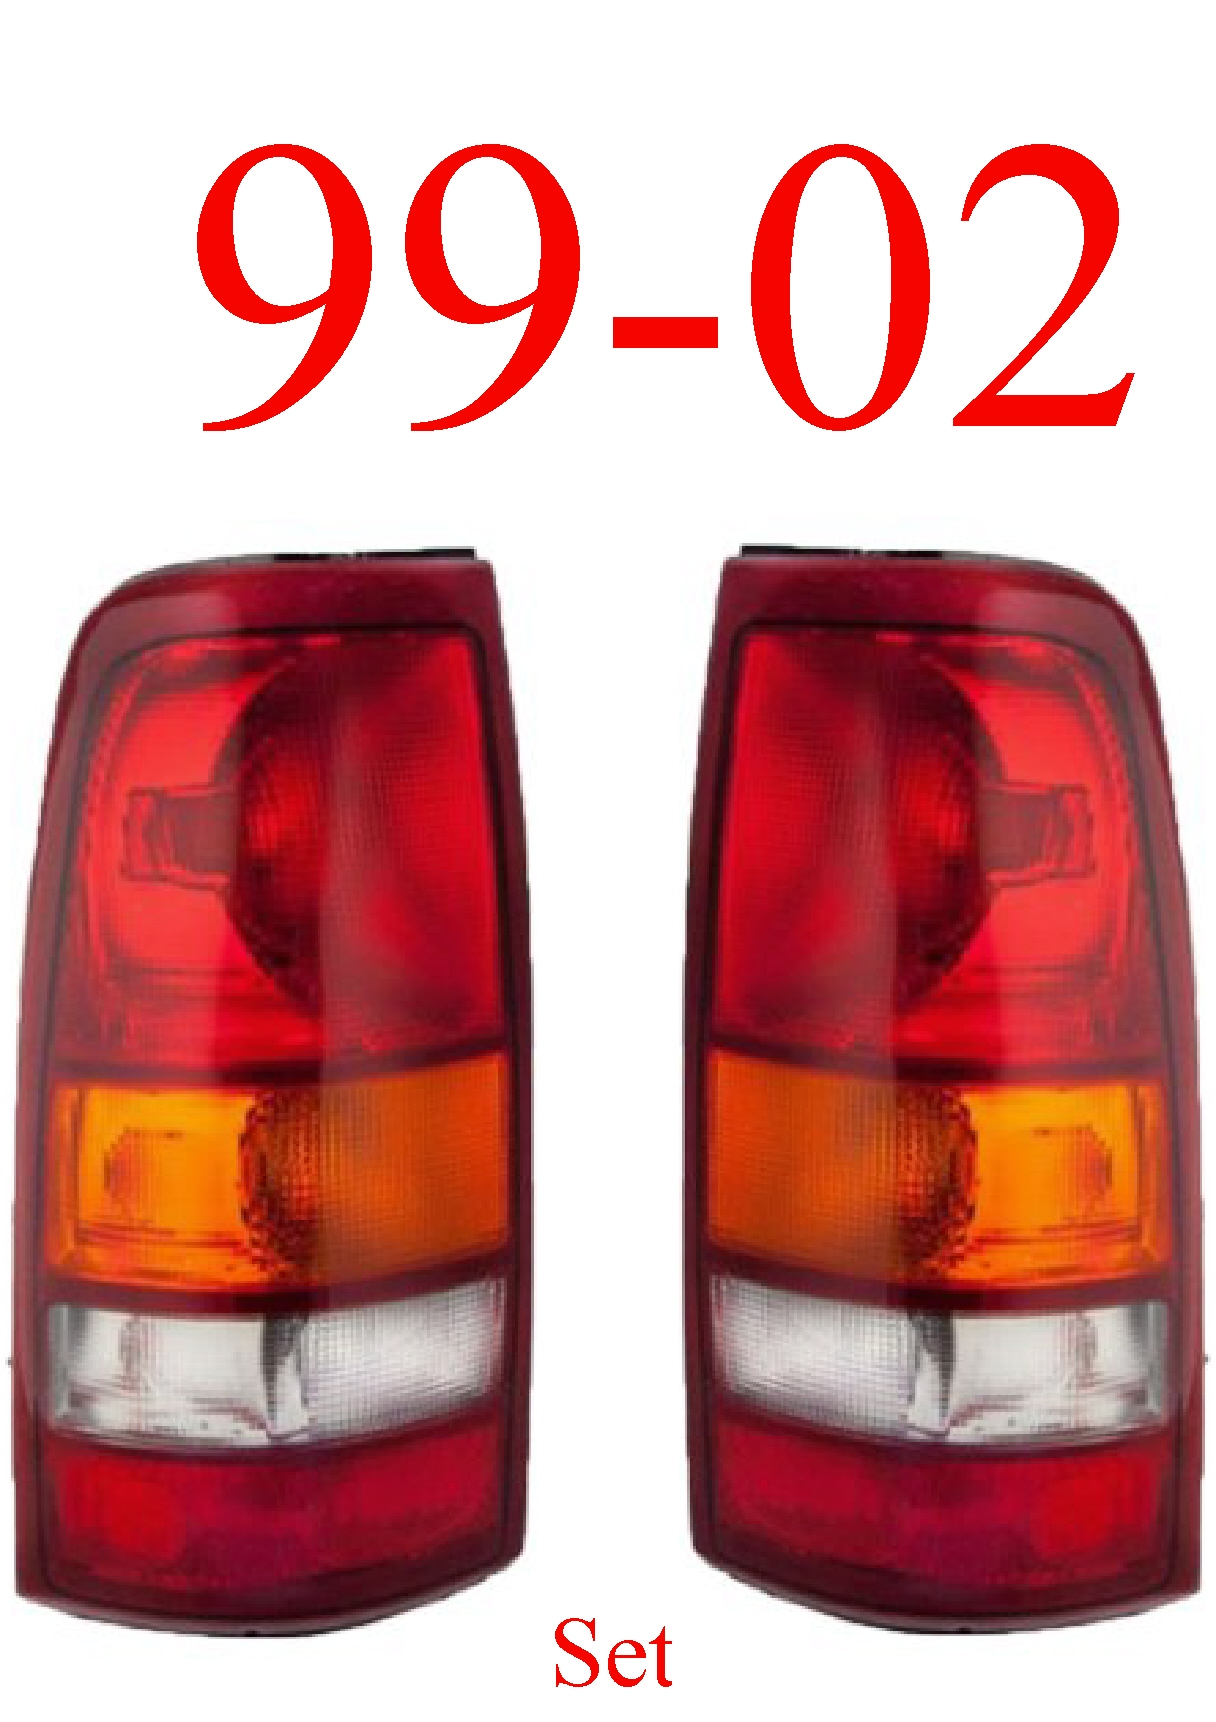 99-02 Silverado Tail Light Set